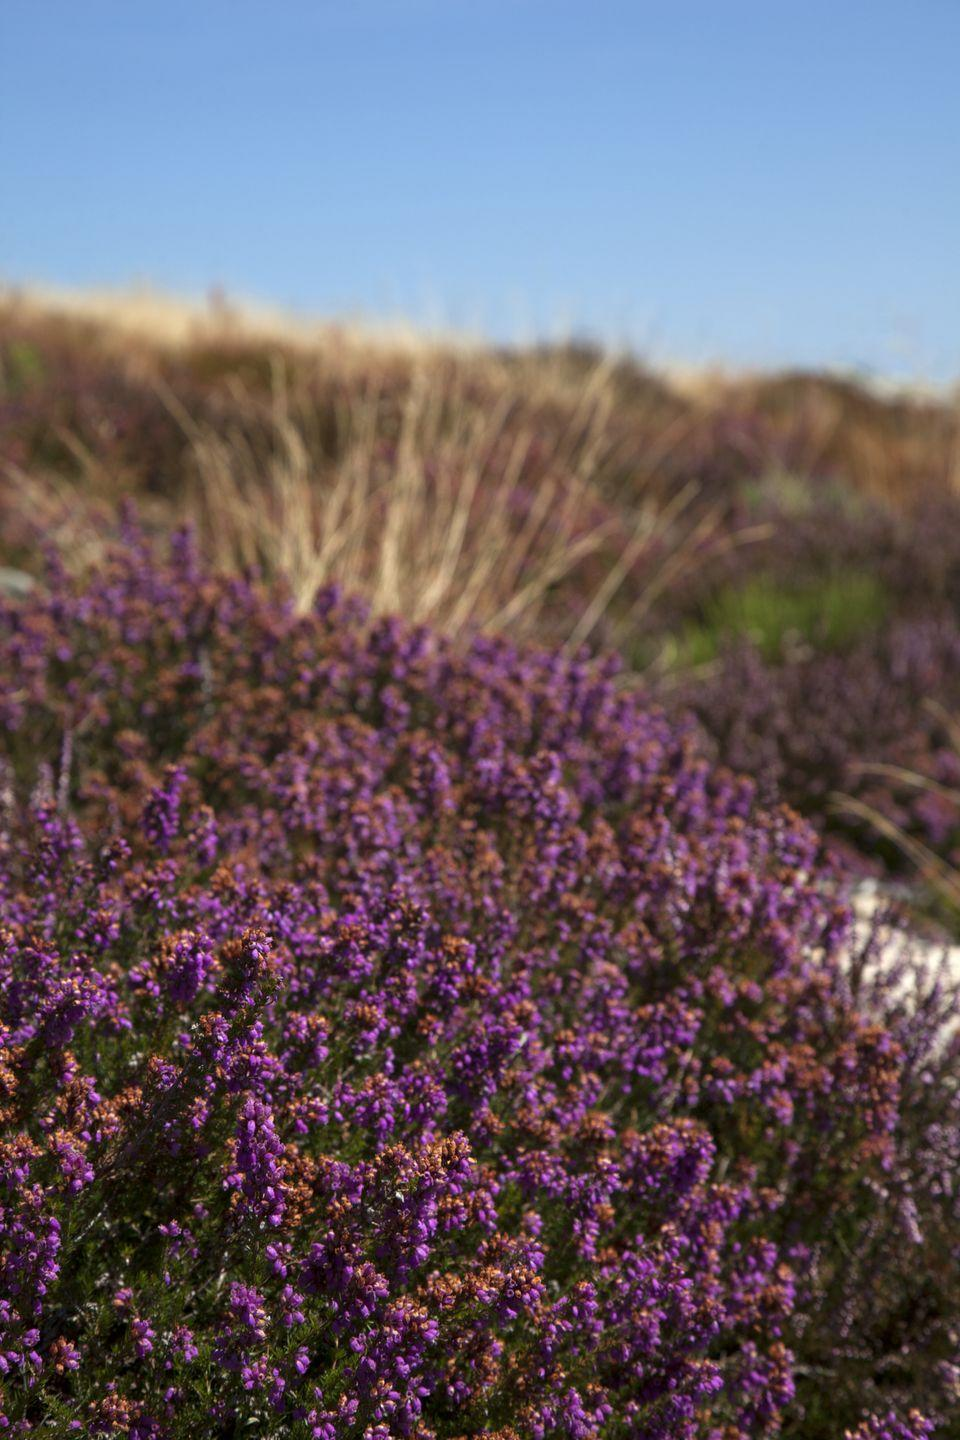 <p>Michael, Jason, and Christopher held steady for boys. Jennifer and Amy maintain popularity, but were joined by fast-rising Heather. The botanical name describes a purple-flowered Eurasian heath that grows abundantly on moorland and heathland. It became one of the most popular names in the 70s.</p>